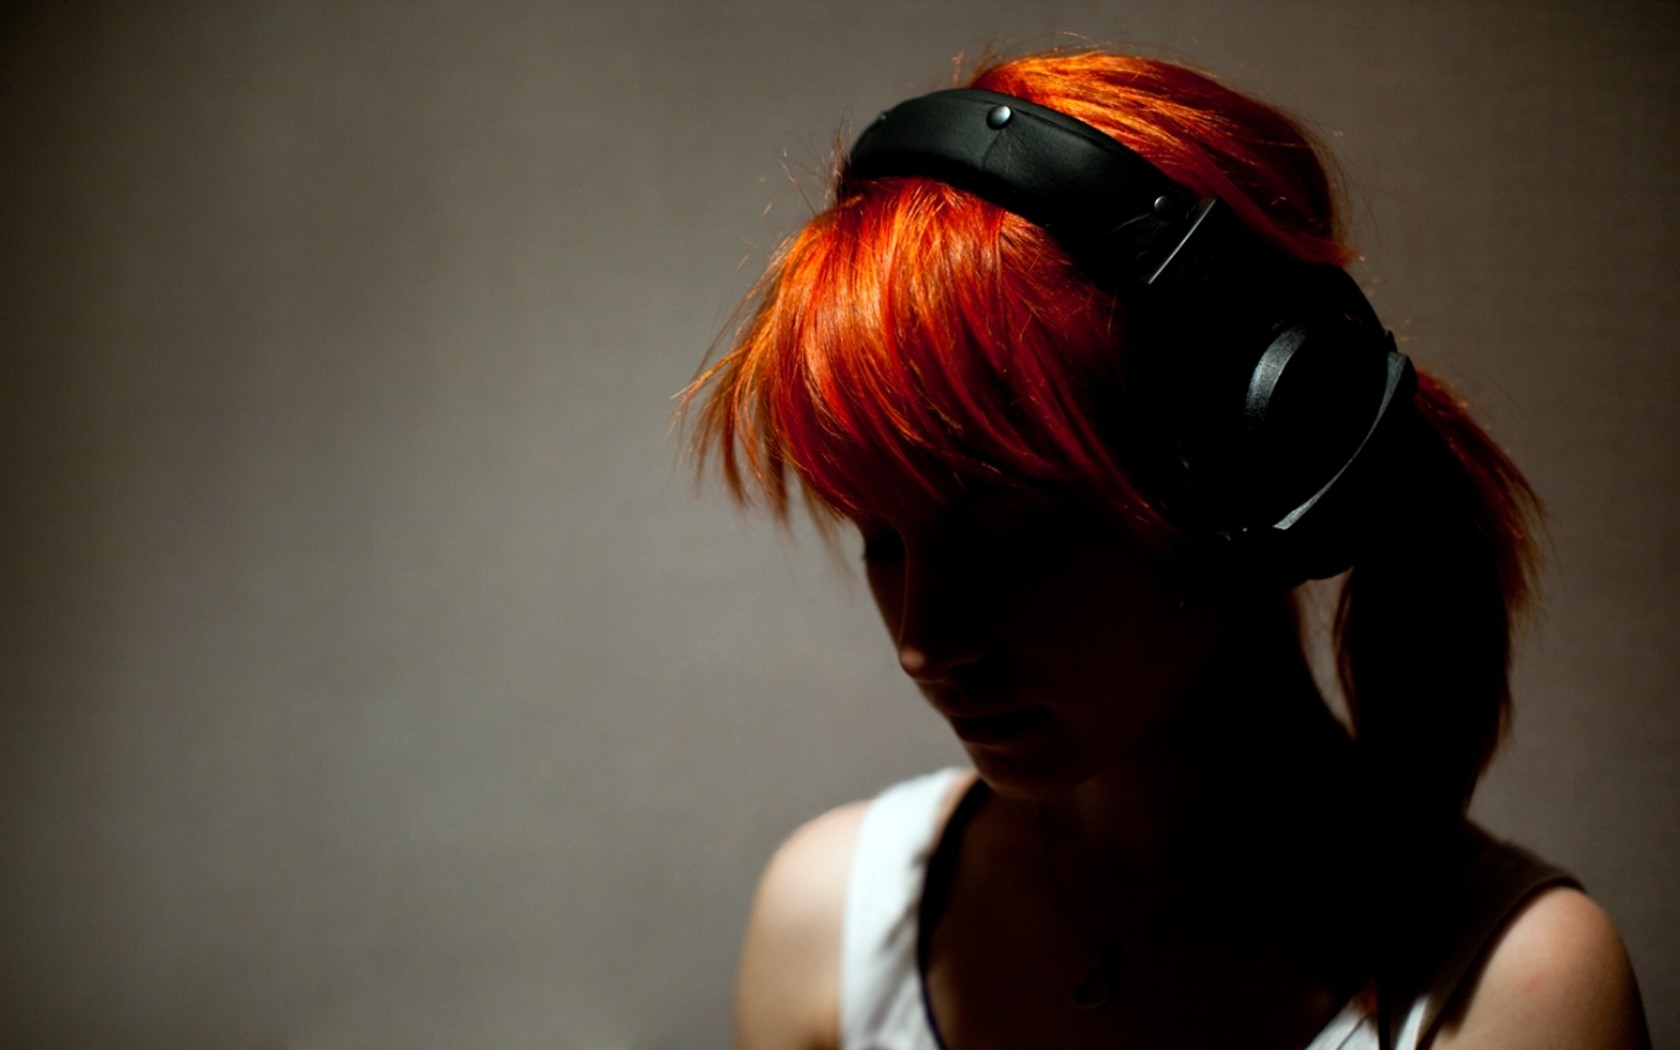 Redhead And Music